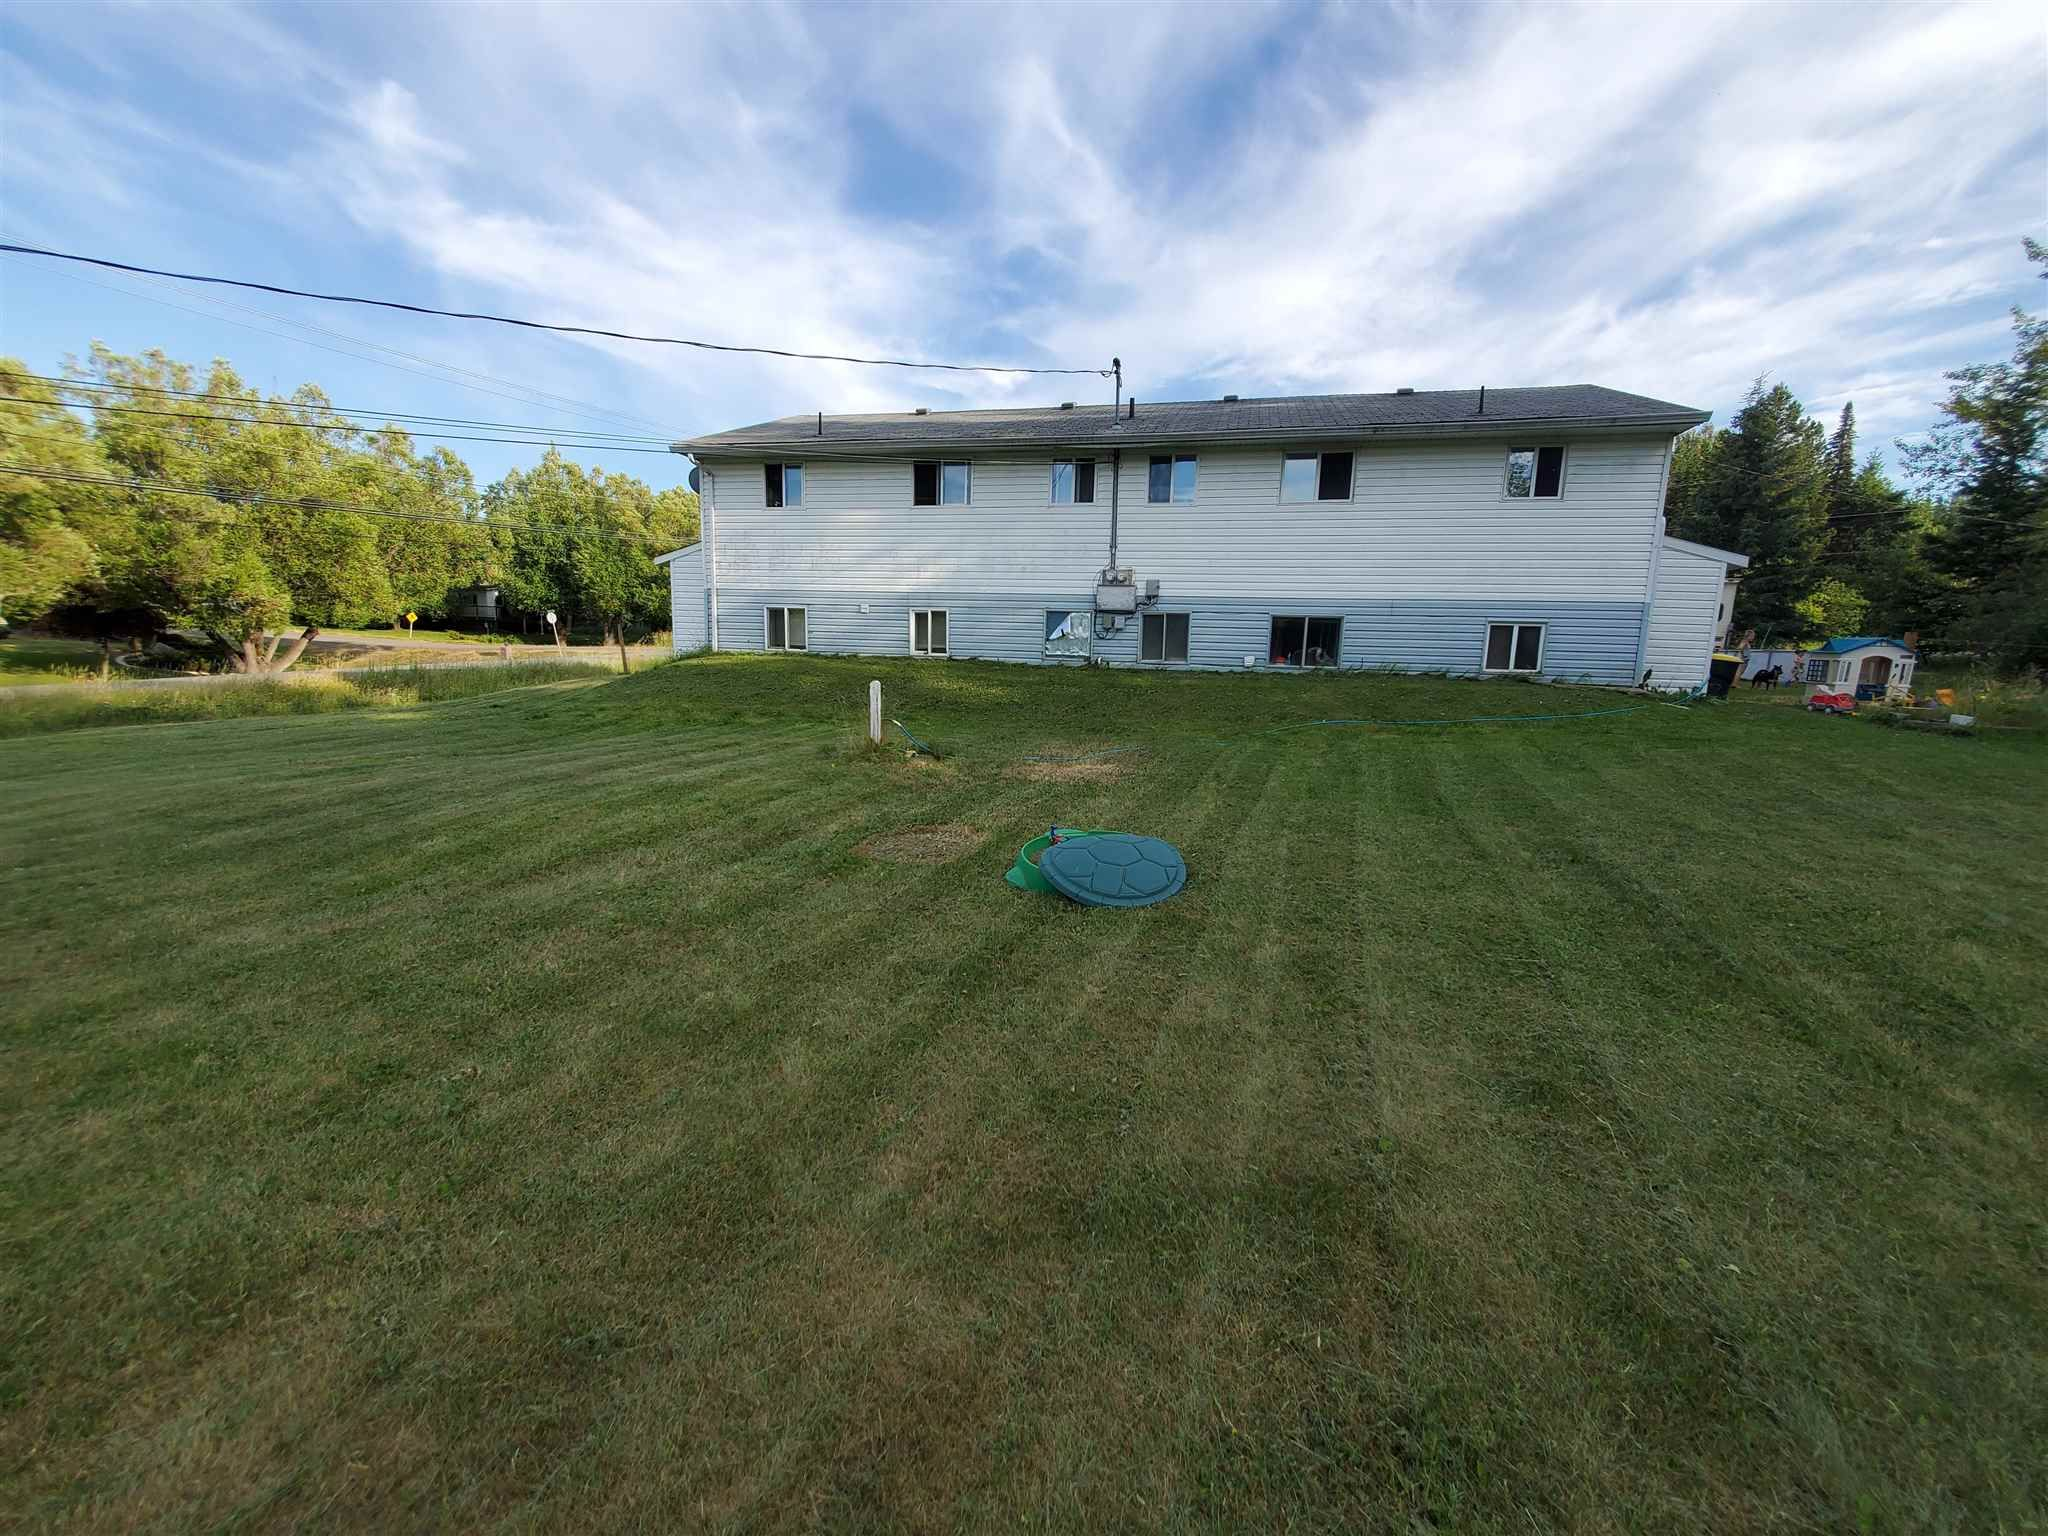 Photo 2: Photos: 1195 - 1197 OMEGA Road in Quesnel: Quesnel - Rural North Duplex for sale (Quesnel (Zone 28))  : MLS®# R2600496